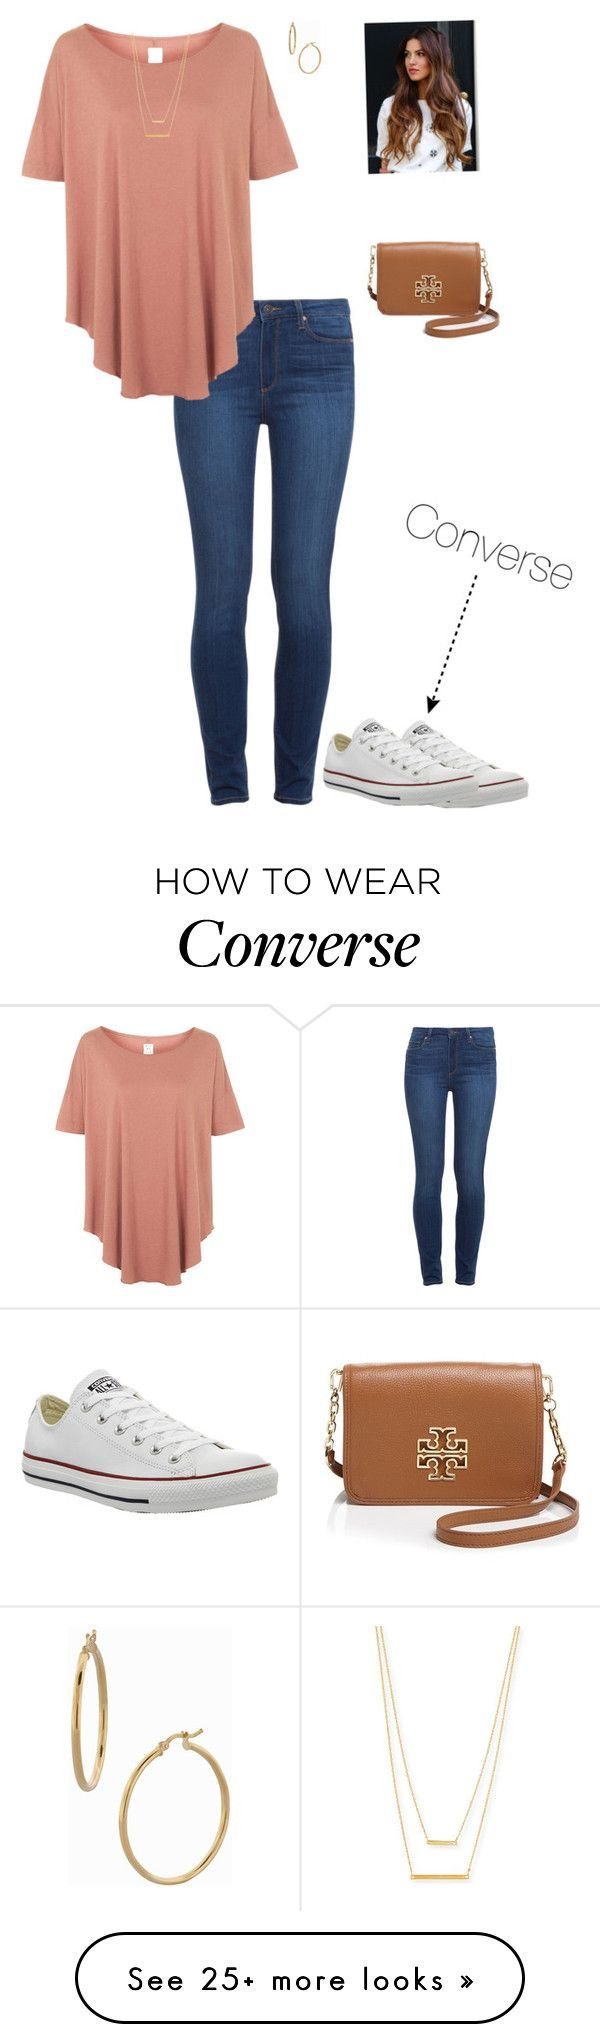 C Is For Converse by preppyygirll on Polyvore featuring Converse, Paige Denim, Topshop, Jennifer Zeuner, Tory Burch and Bony Levy                                                                                                                                                      More